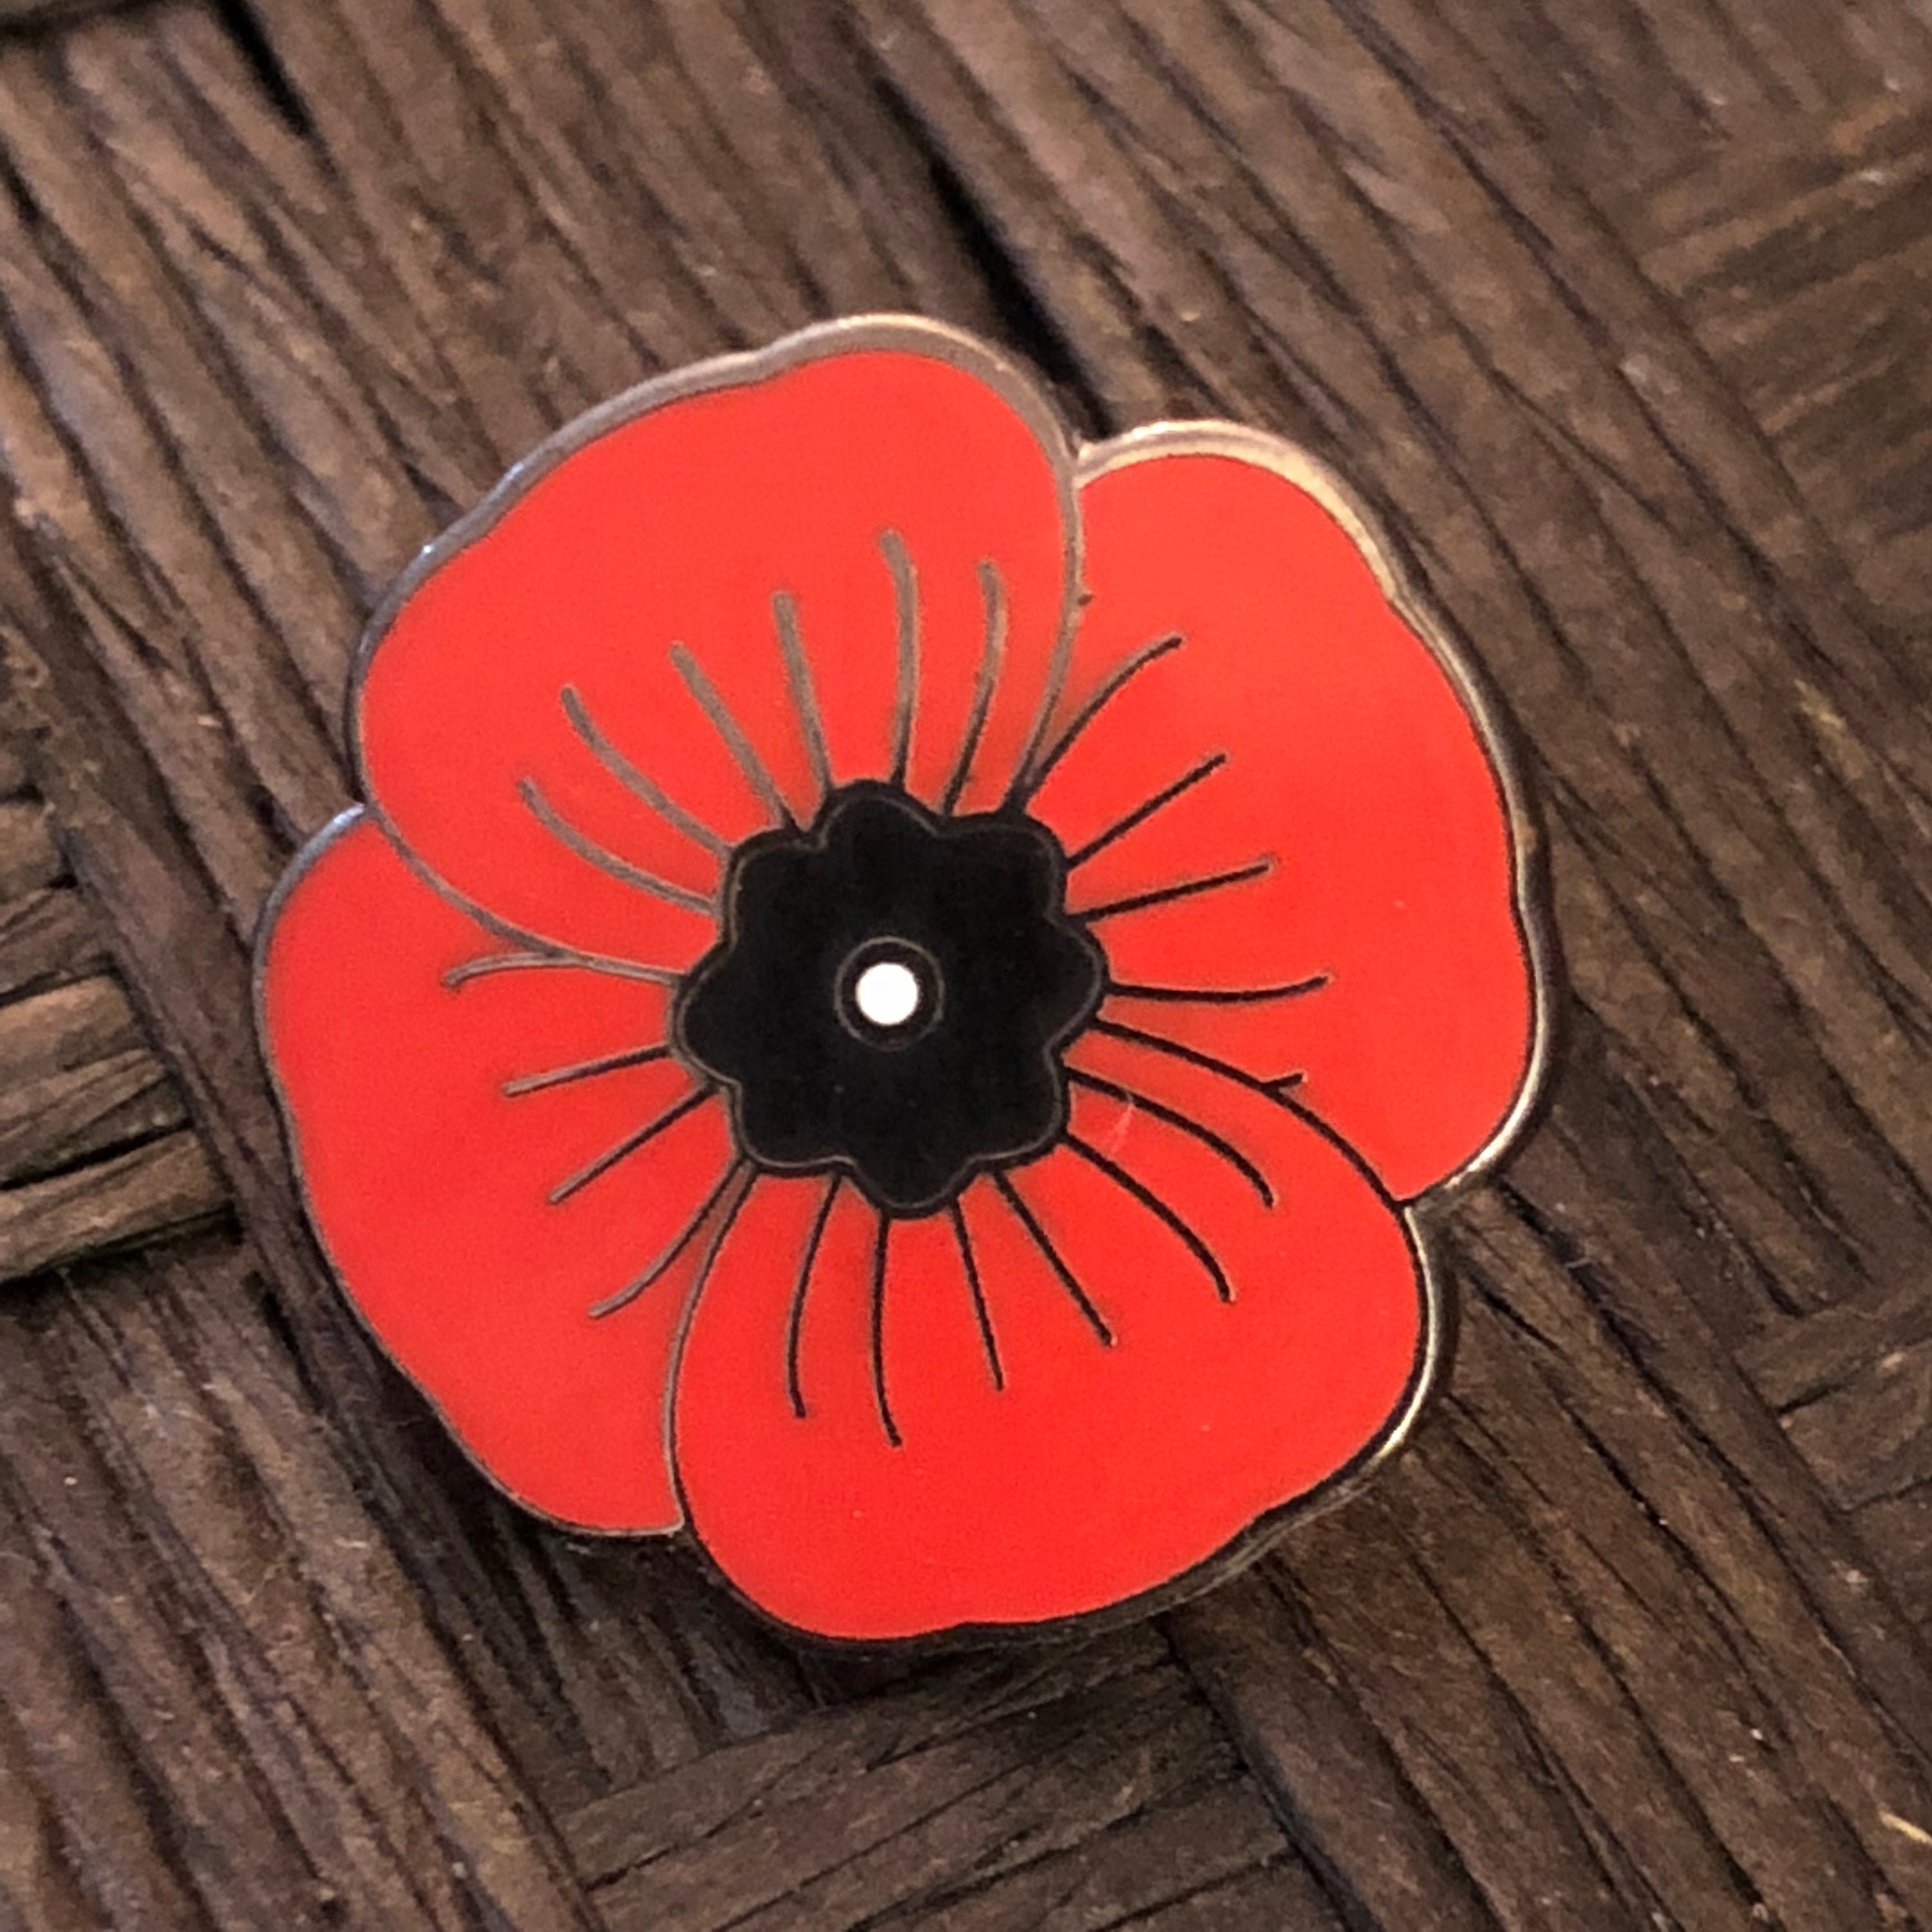 Memorial Poppy enamel lapel pin, hat pin, WWI, WWII, World War, military  pins, honor pins, enamel pin, poppy badge, Remembrance Day